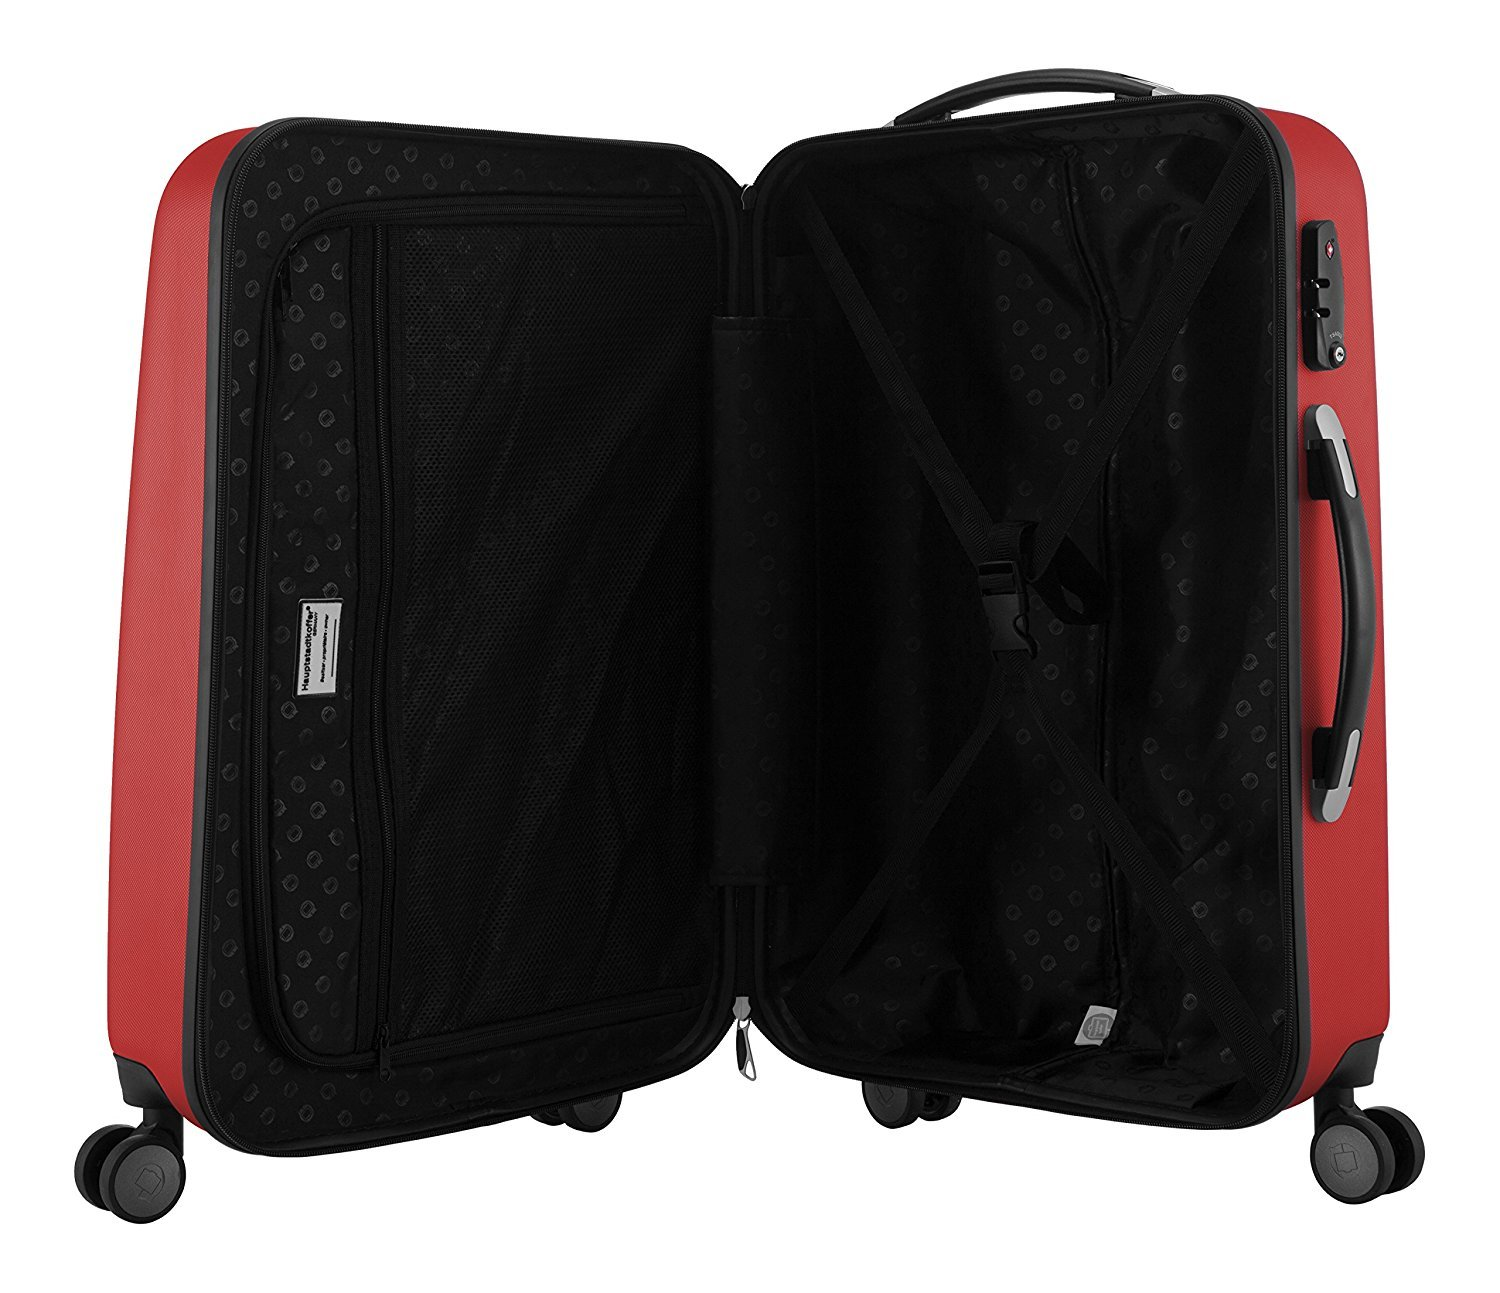 "HAUPTSTADTKOFFER - Wedding - Set of 3 Hard-side Luggage Glossy Suitcase Hardside Spinner Trolley Expandable (20"", 24"" & 28"") TSA Red by Hauptstadtkoffer (Image #5)"